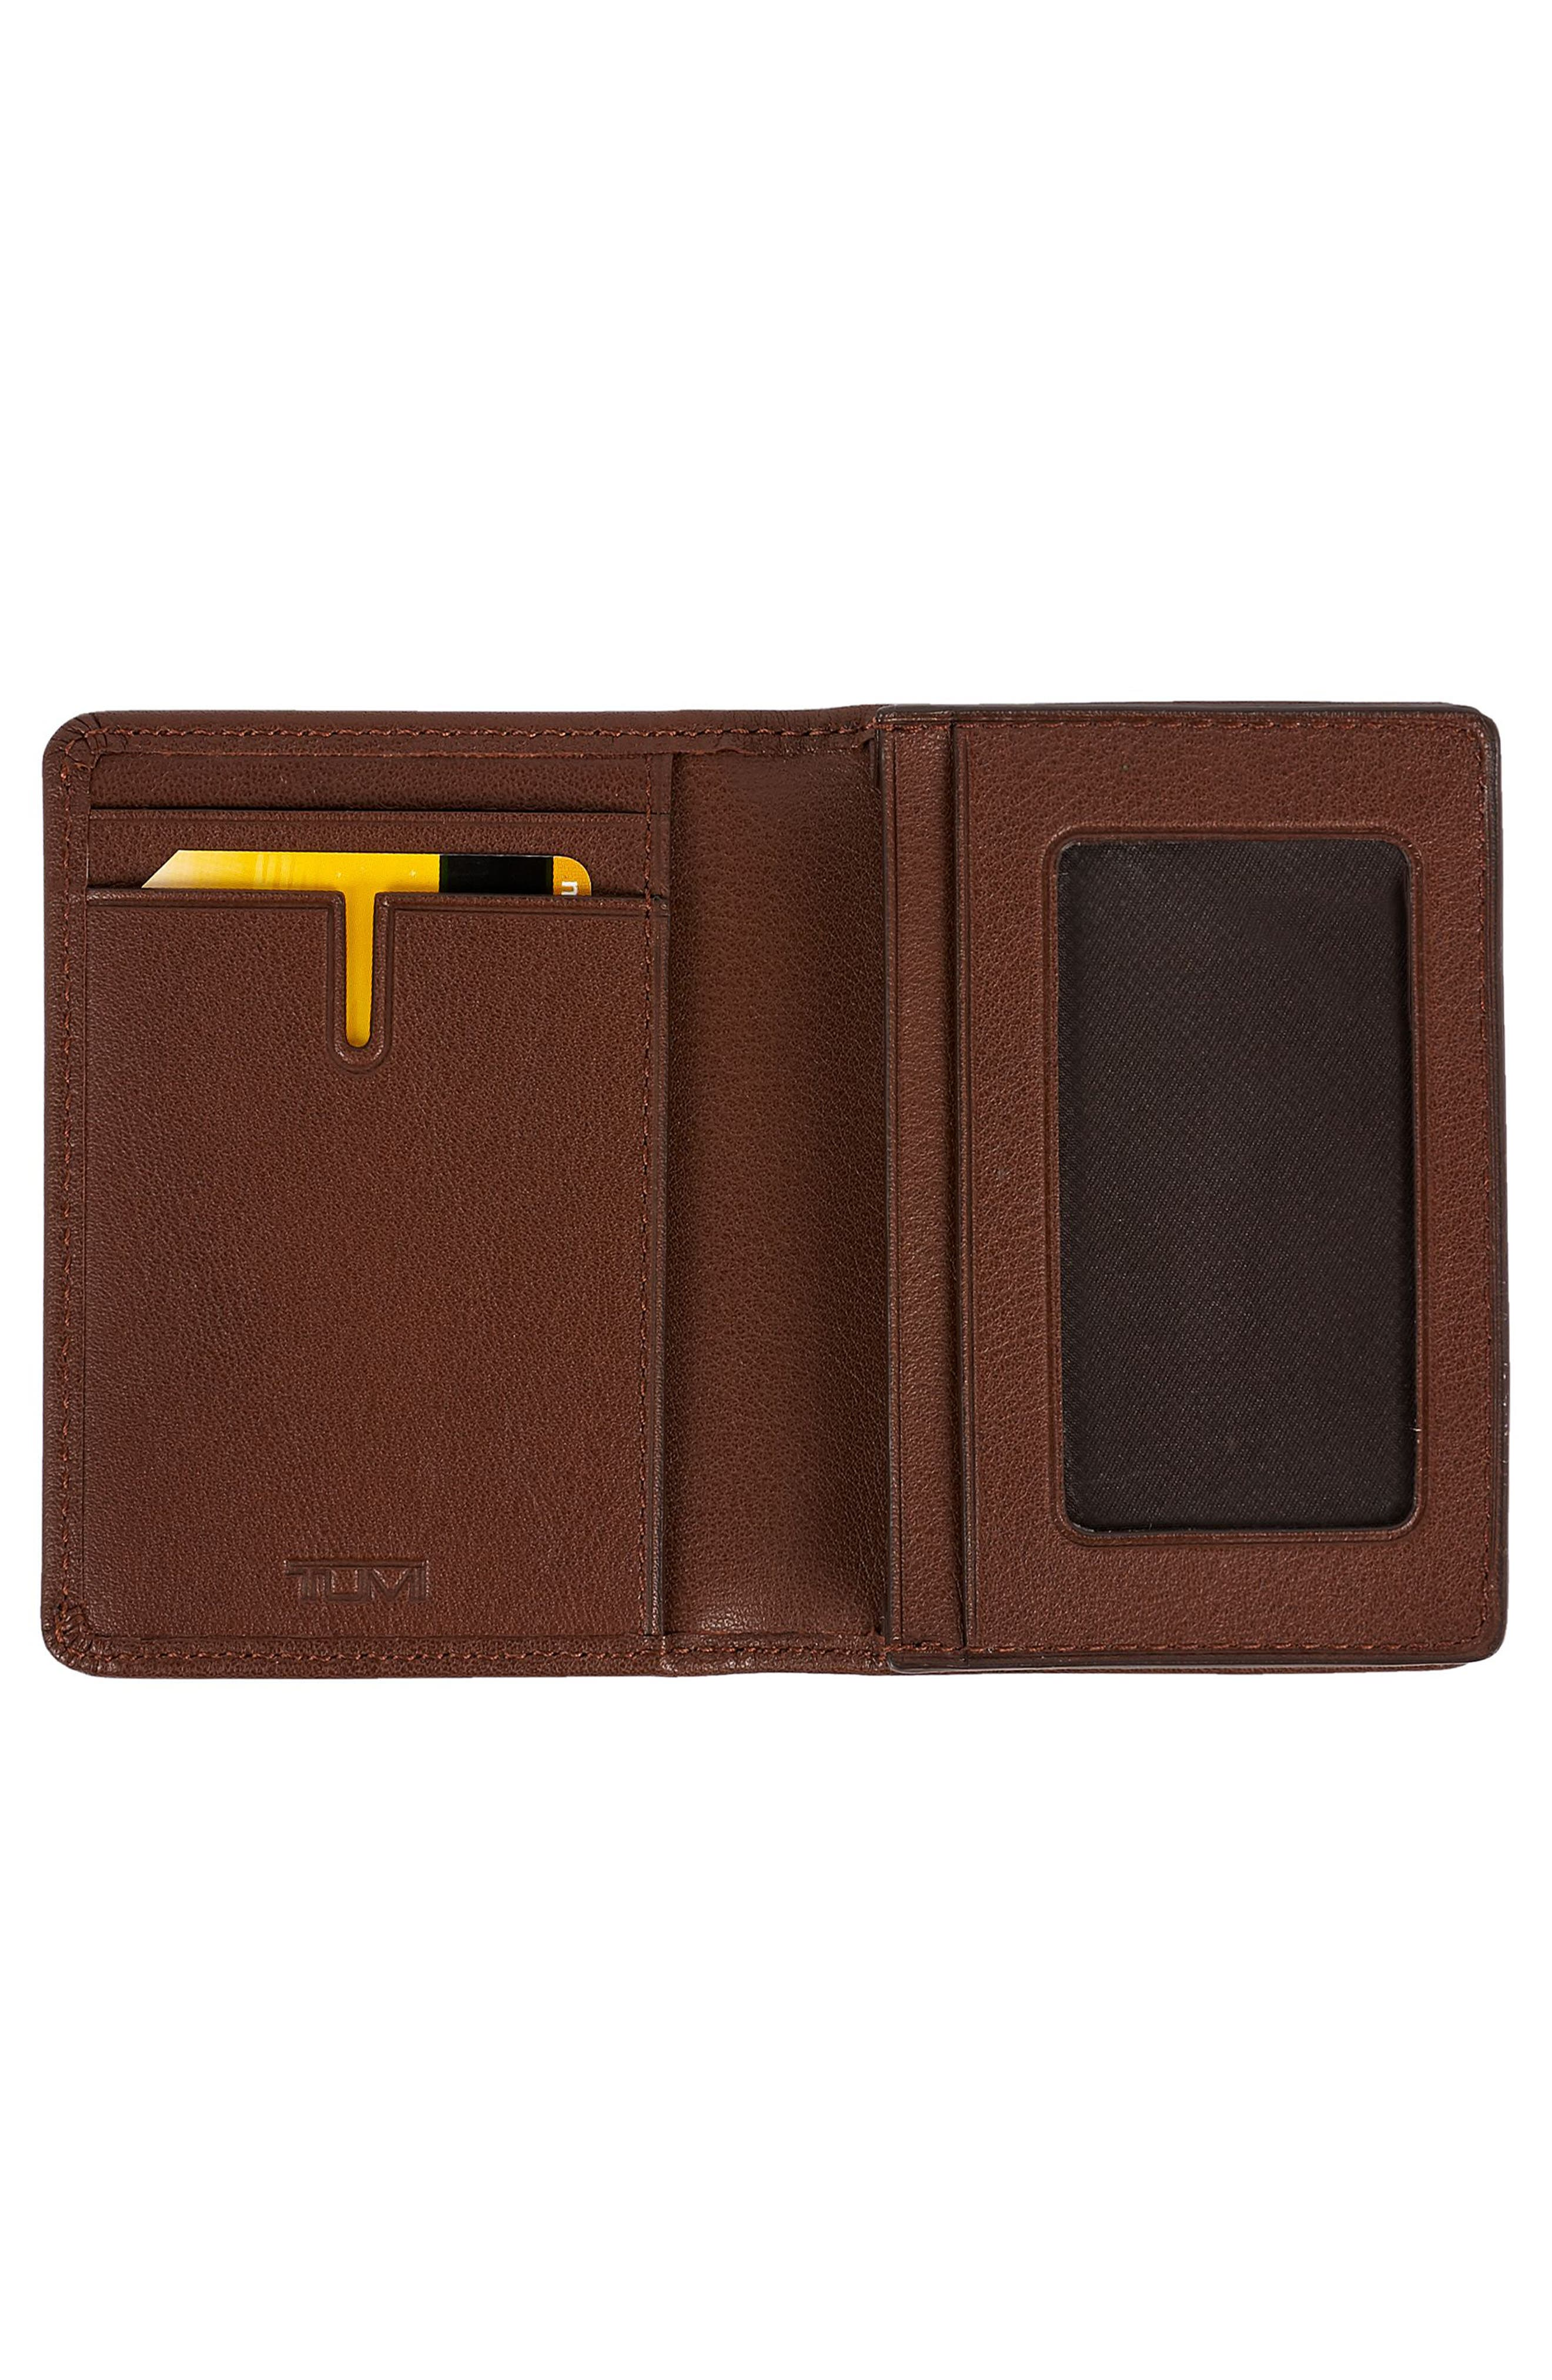 Leather RFID Card Case,                             Alternate thumbnail 5, color,